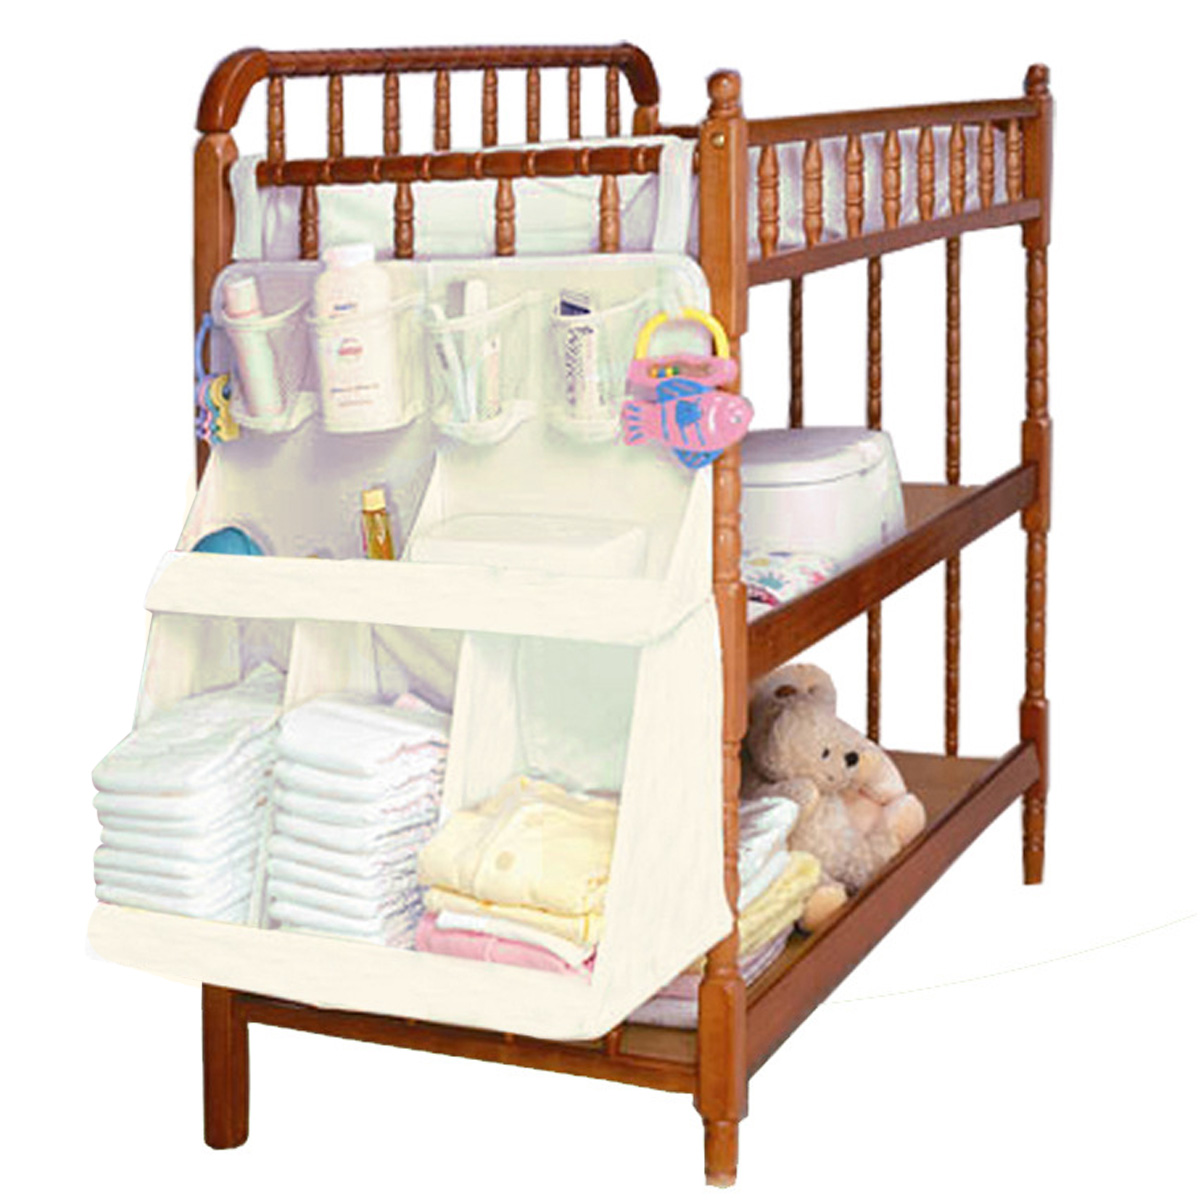 baby bed bedding set accessories waterproof diapers organizer baby crib bed hanging bag portable storage - Porta Crib